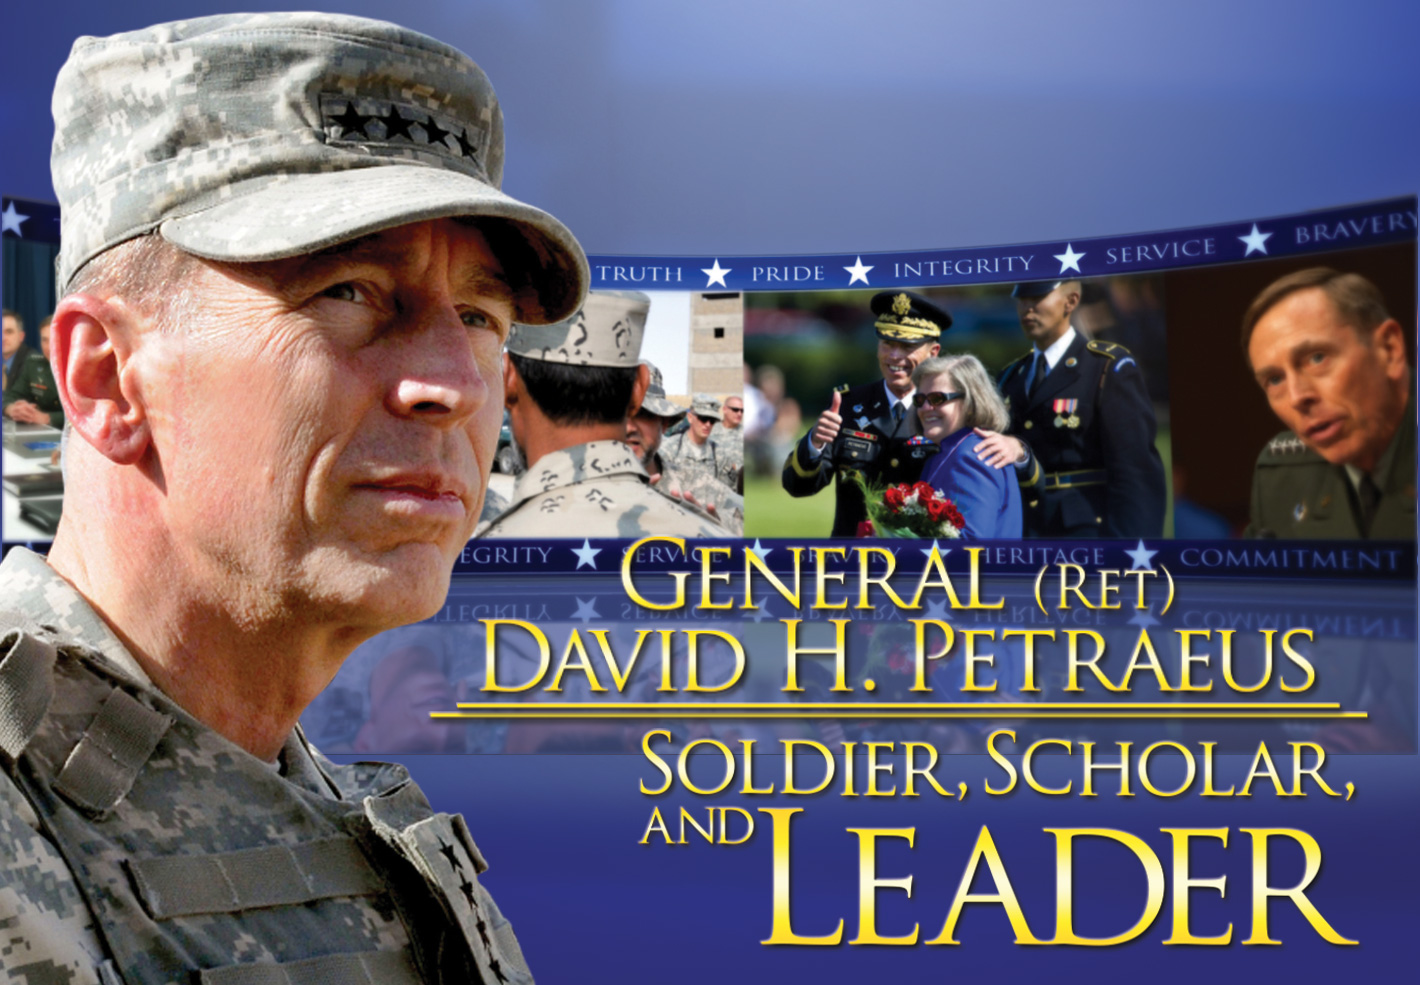 click the image to view the 2012 Distinguished Leadership Award tribute video for Gen. Petraeus